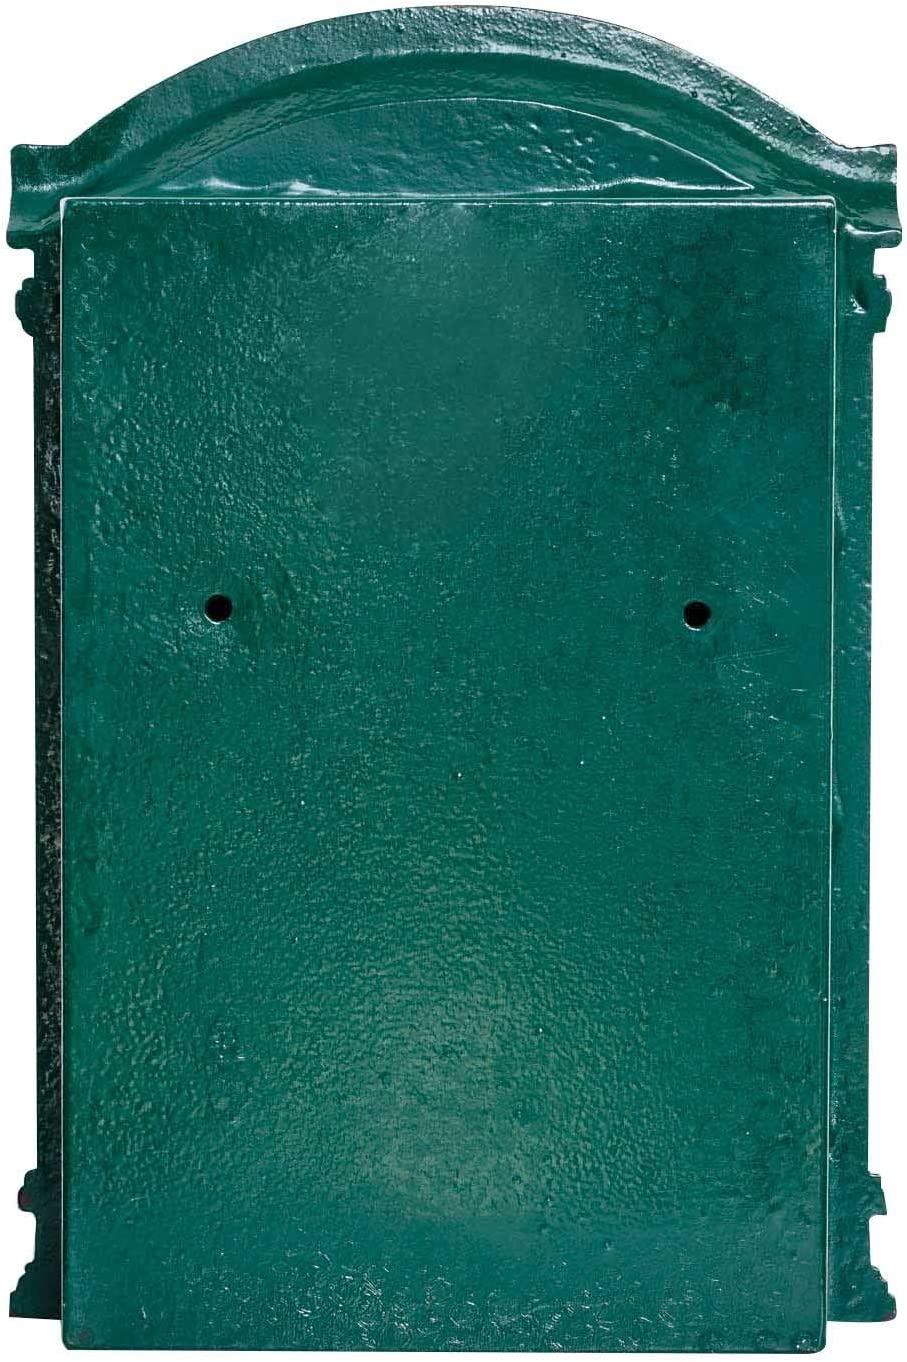 Exquisite letter box 44cm green iron wall-mounted in a vintage style